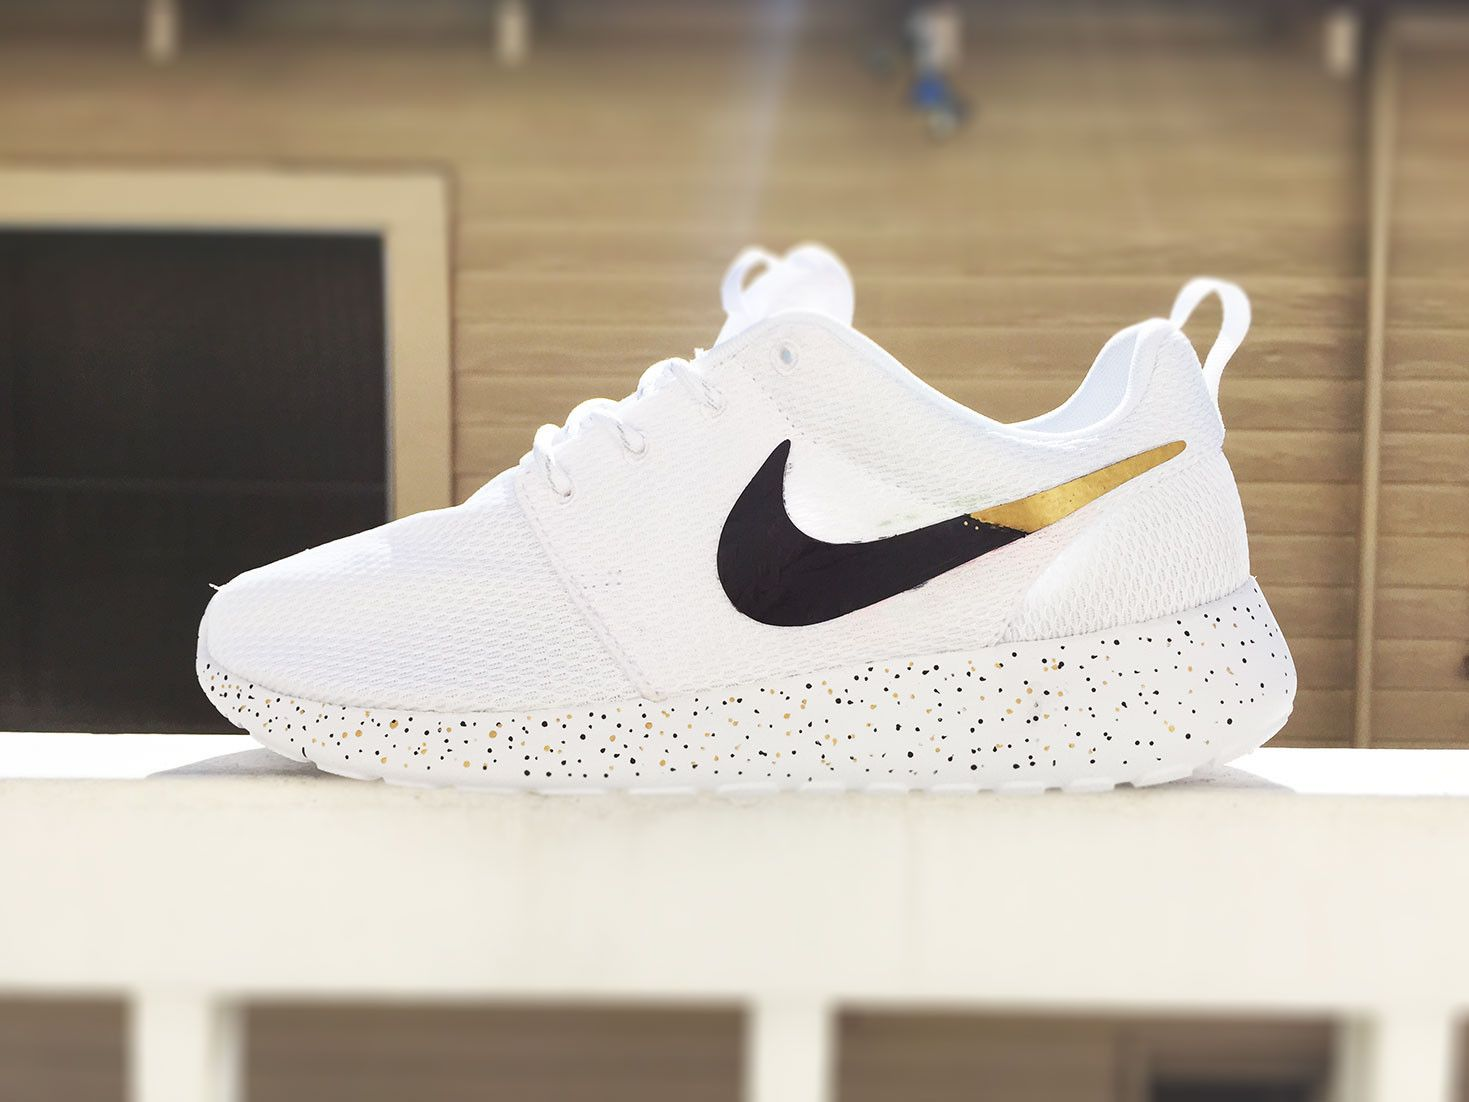 huge discount bbe80 4c6c1 Custom Nike Roshe Run sneakers for women, All white, Black and Gold,  Silver, specles, gold flakes, love, fashionable design